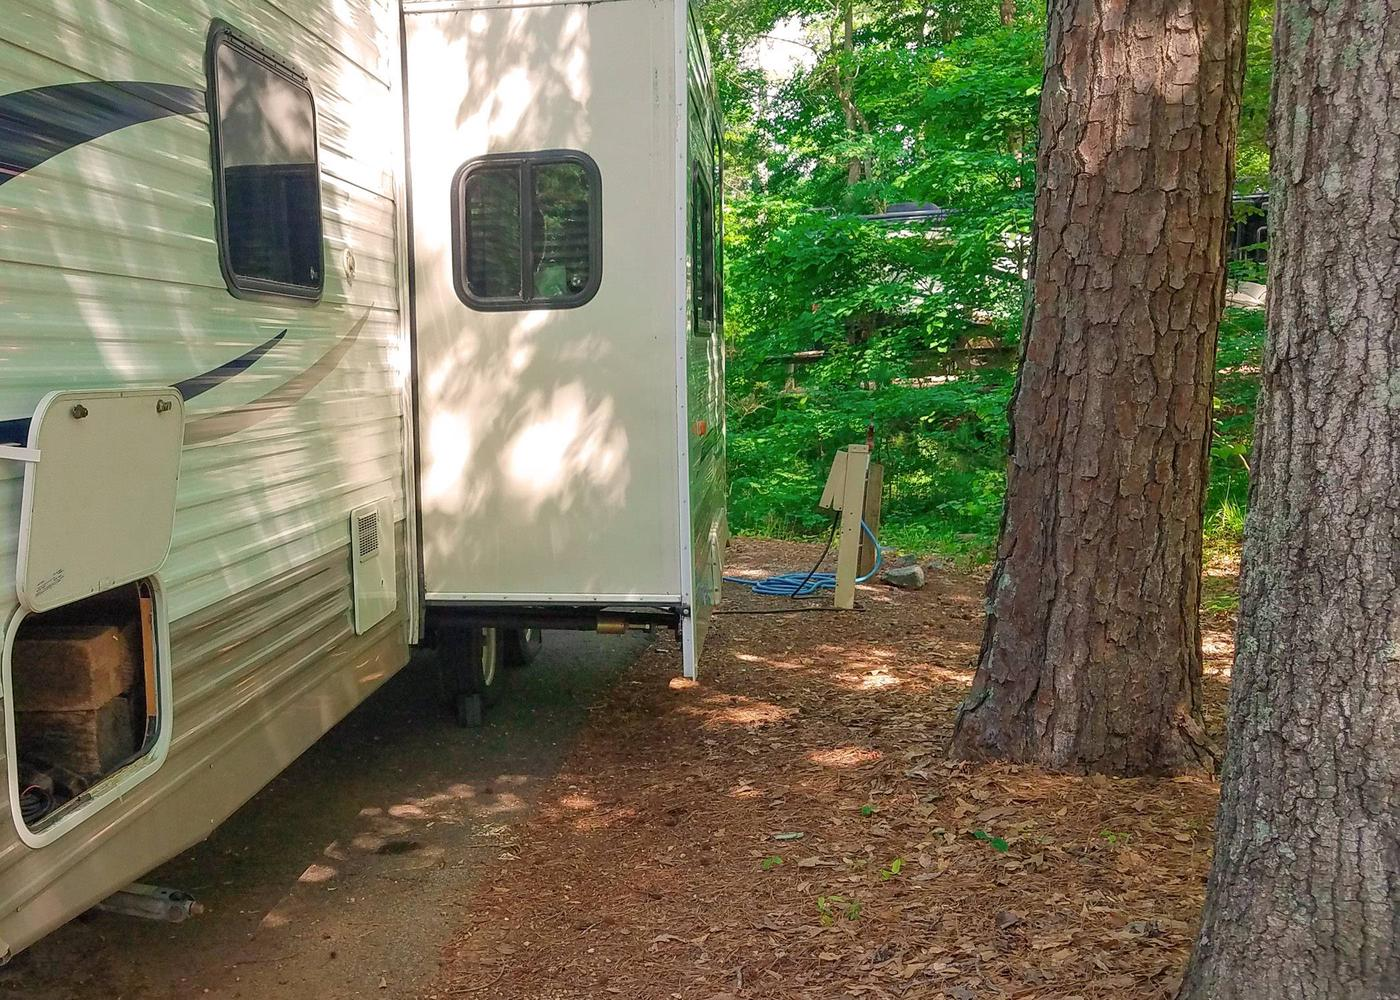 Utilities-side clearance.Victoria Campground, campsite 17.